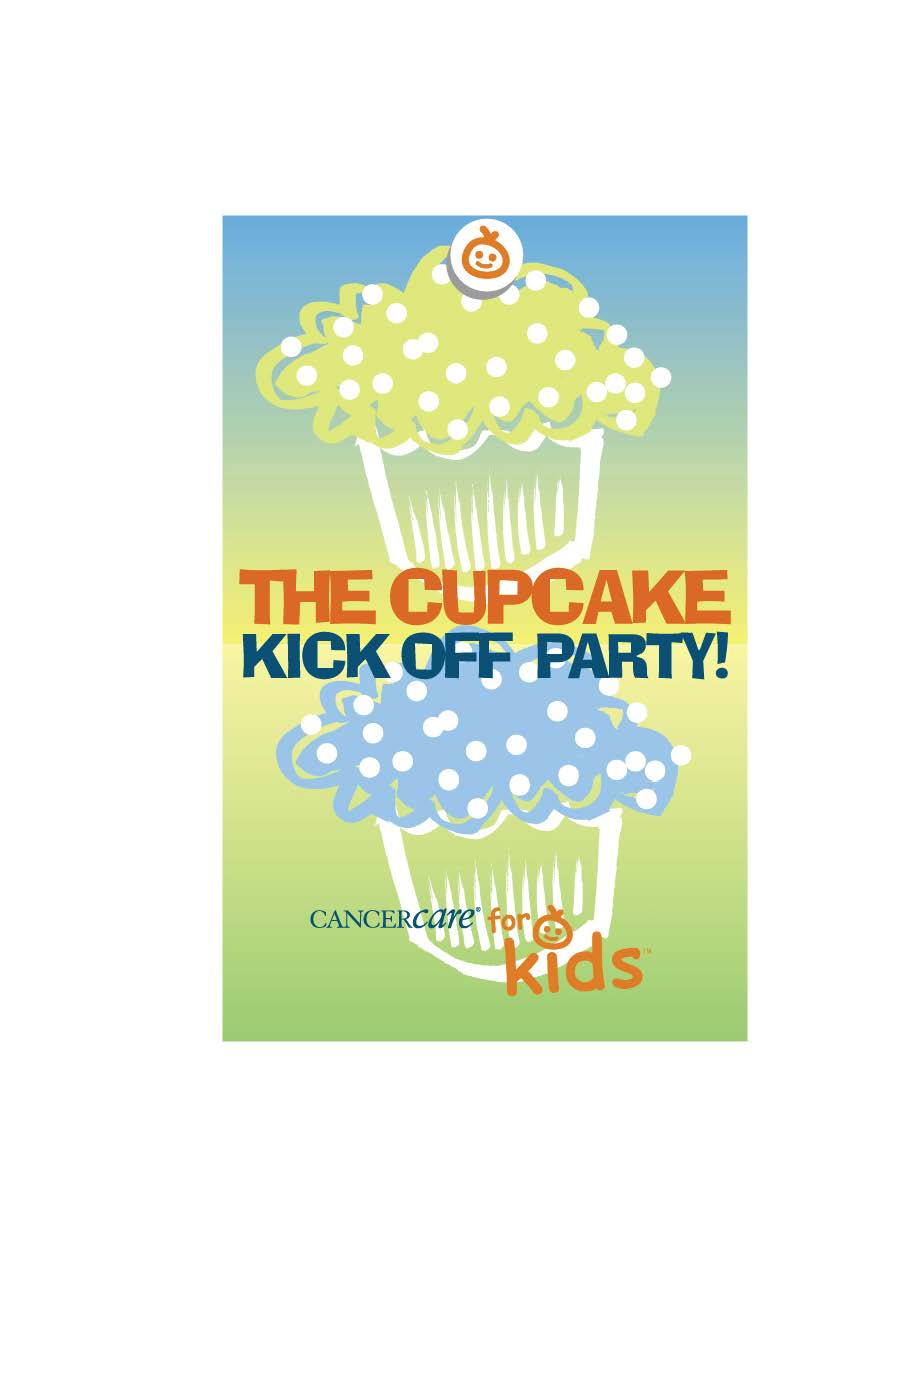 Cupcake Fundraiser for CancerCare